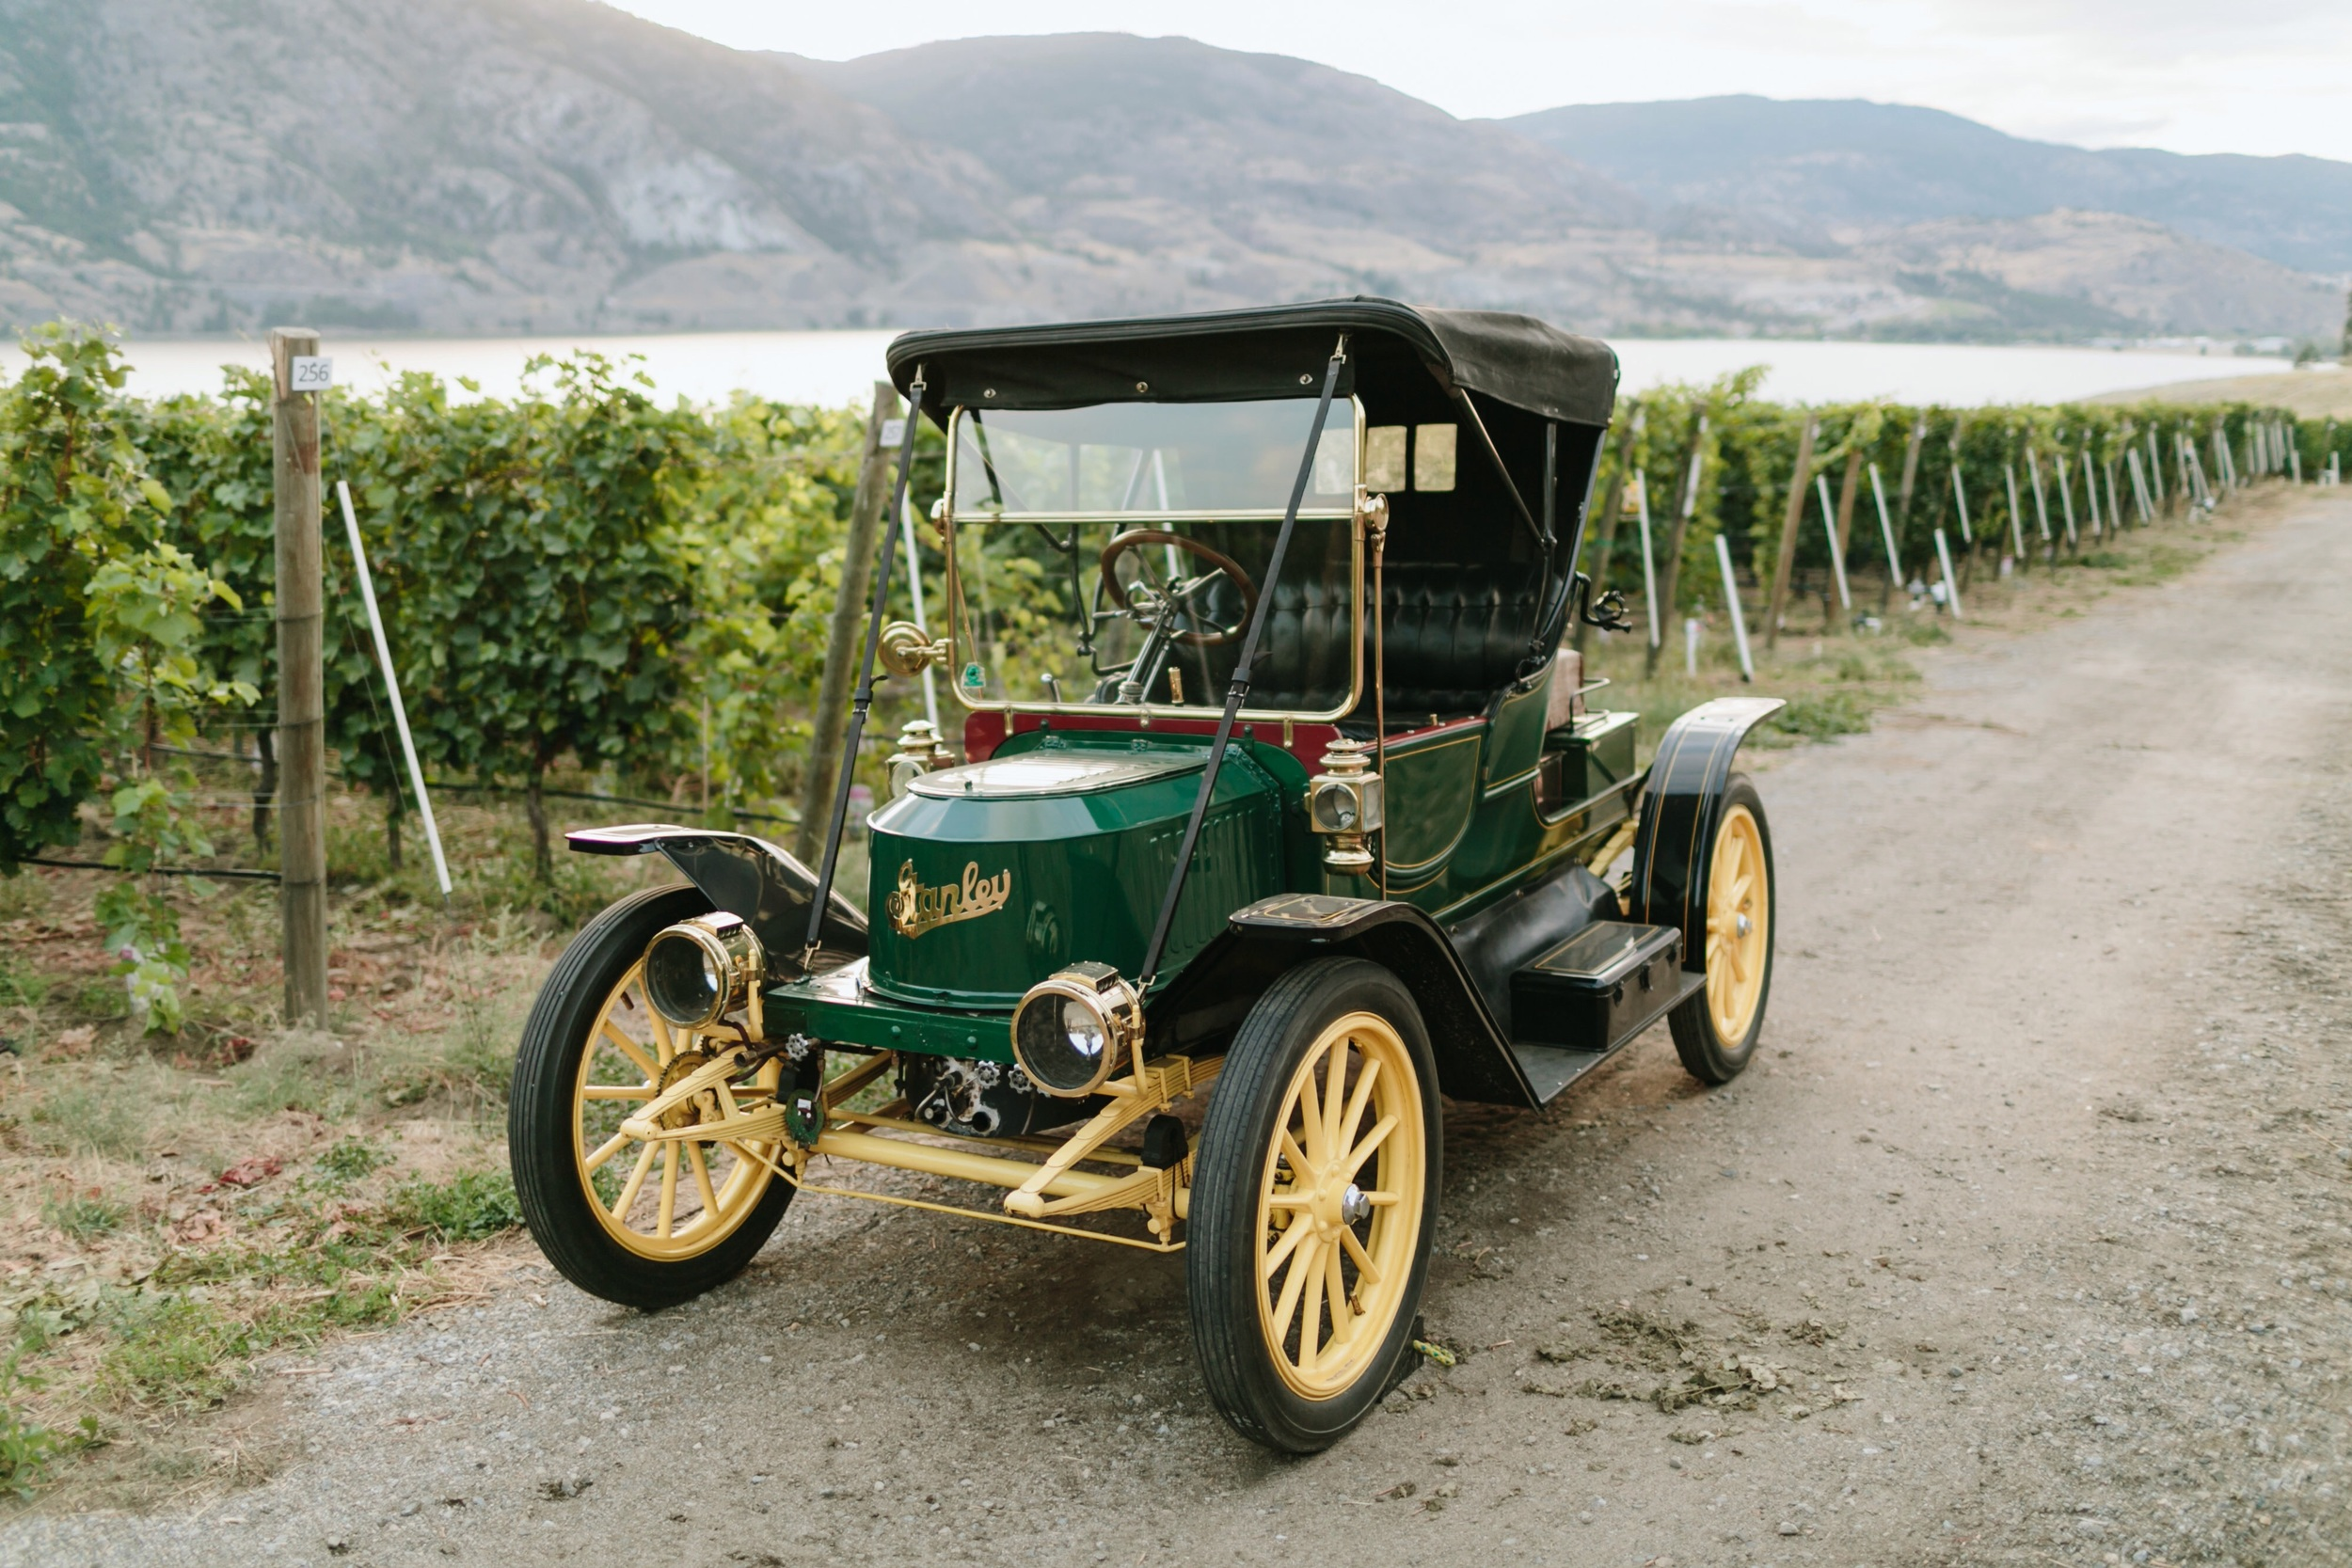 1911 Stanley Model 62 @ Painted Rock Winery in Penticton B.C